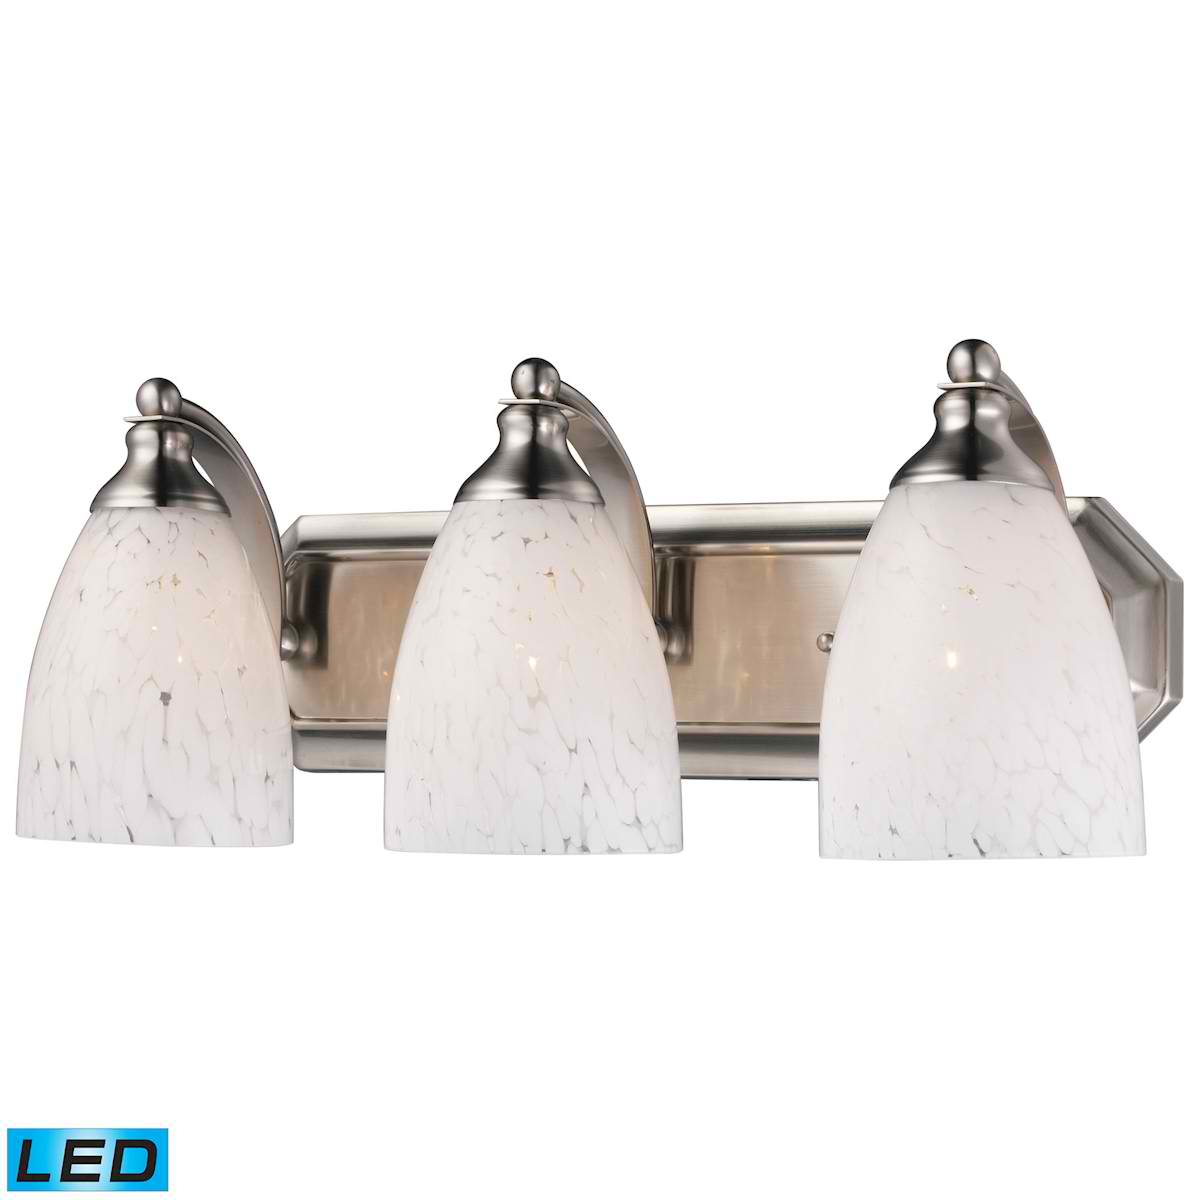 3 Light Vanity in Satin Nickel and Snow White Glass - LED, 800 Lumens (2400 Lumens Total) with Full Scale